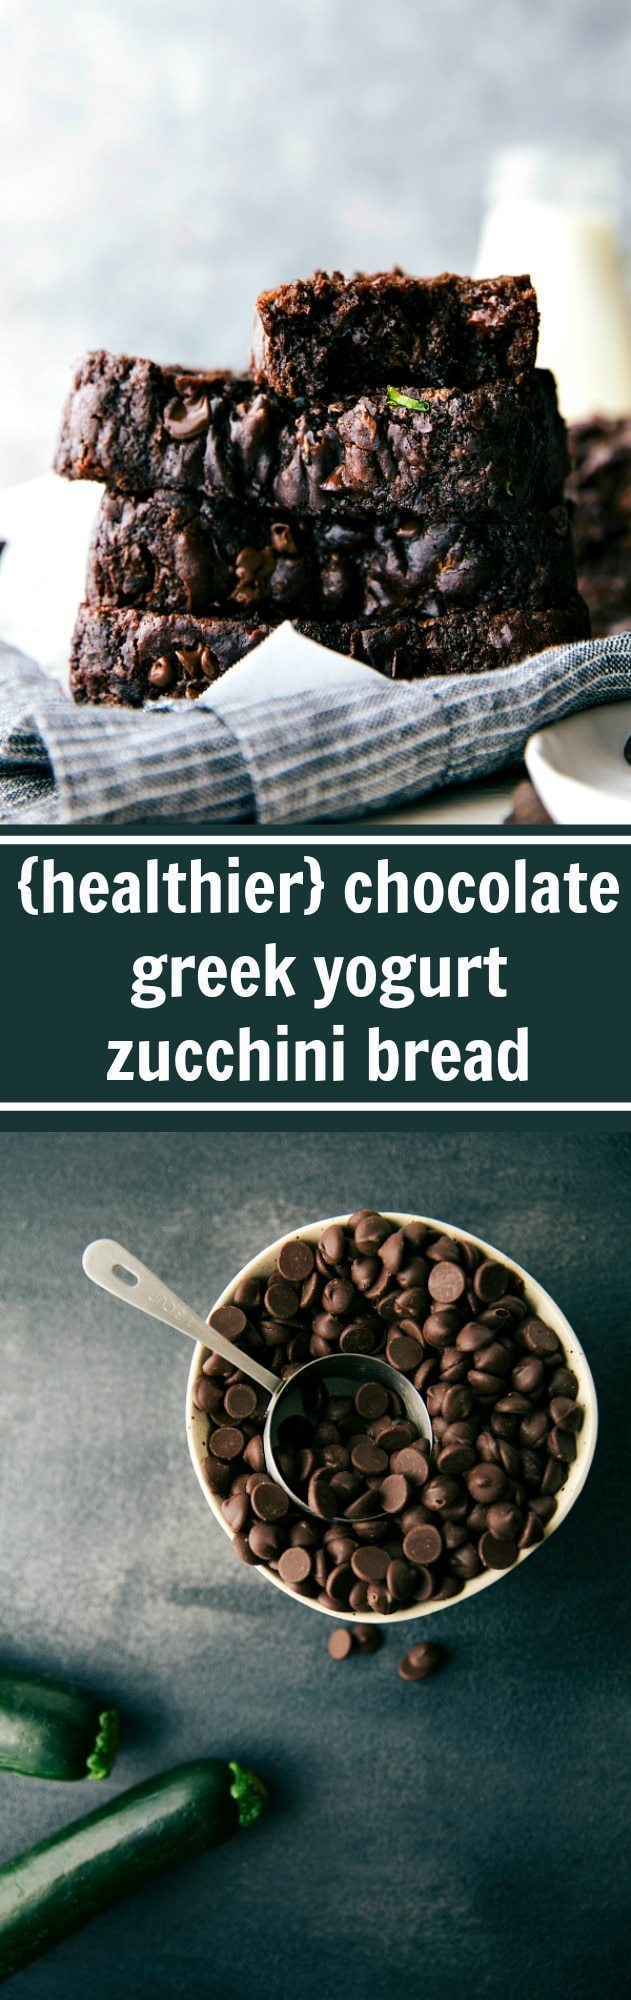 Chocolate Greek Yogurt Zucchini Bread made with healthier ingredients and lower sugar!